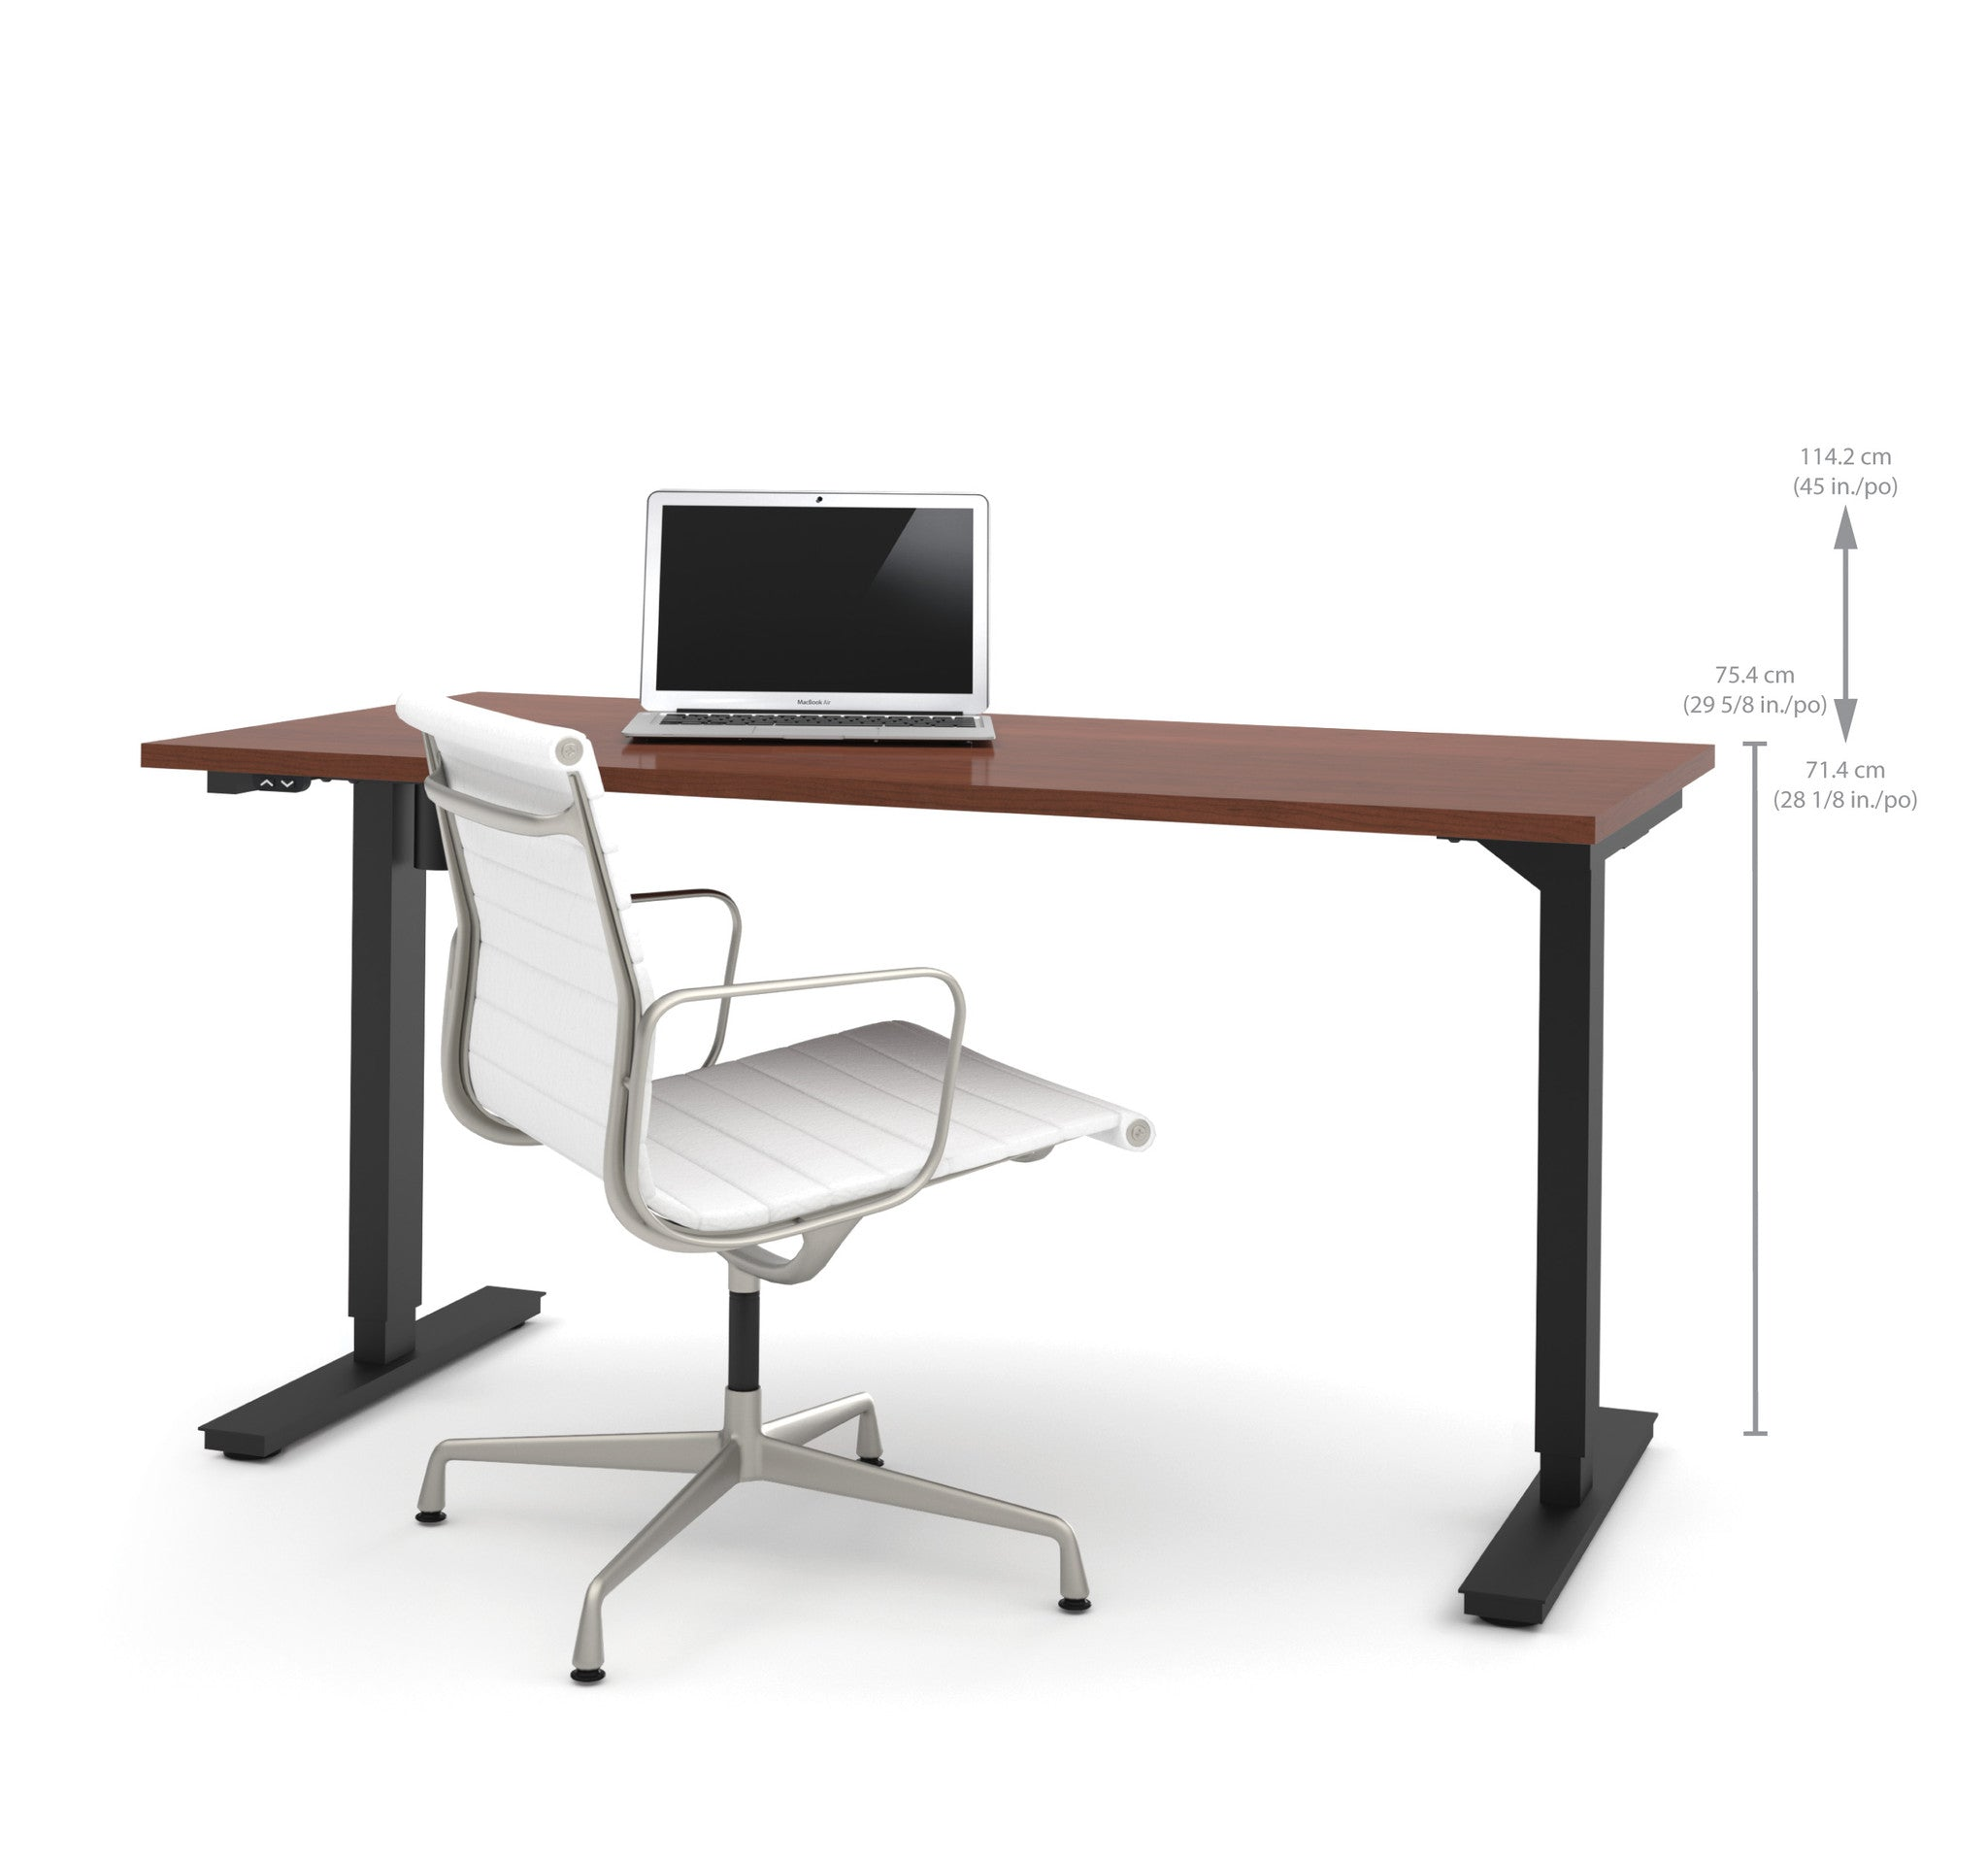 60 sit stand electric height adjustable office desk in bordeaux 28. Black Bedroom Furniture Sets. Home Design Ideas